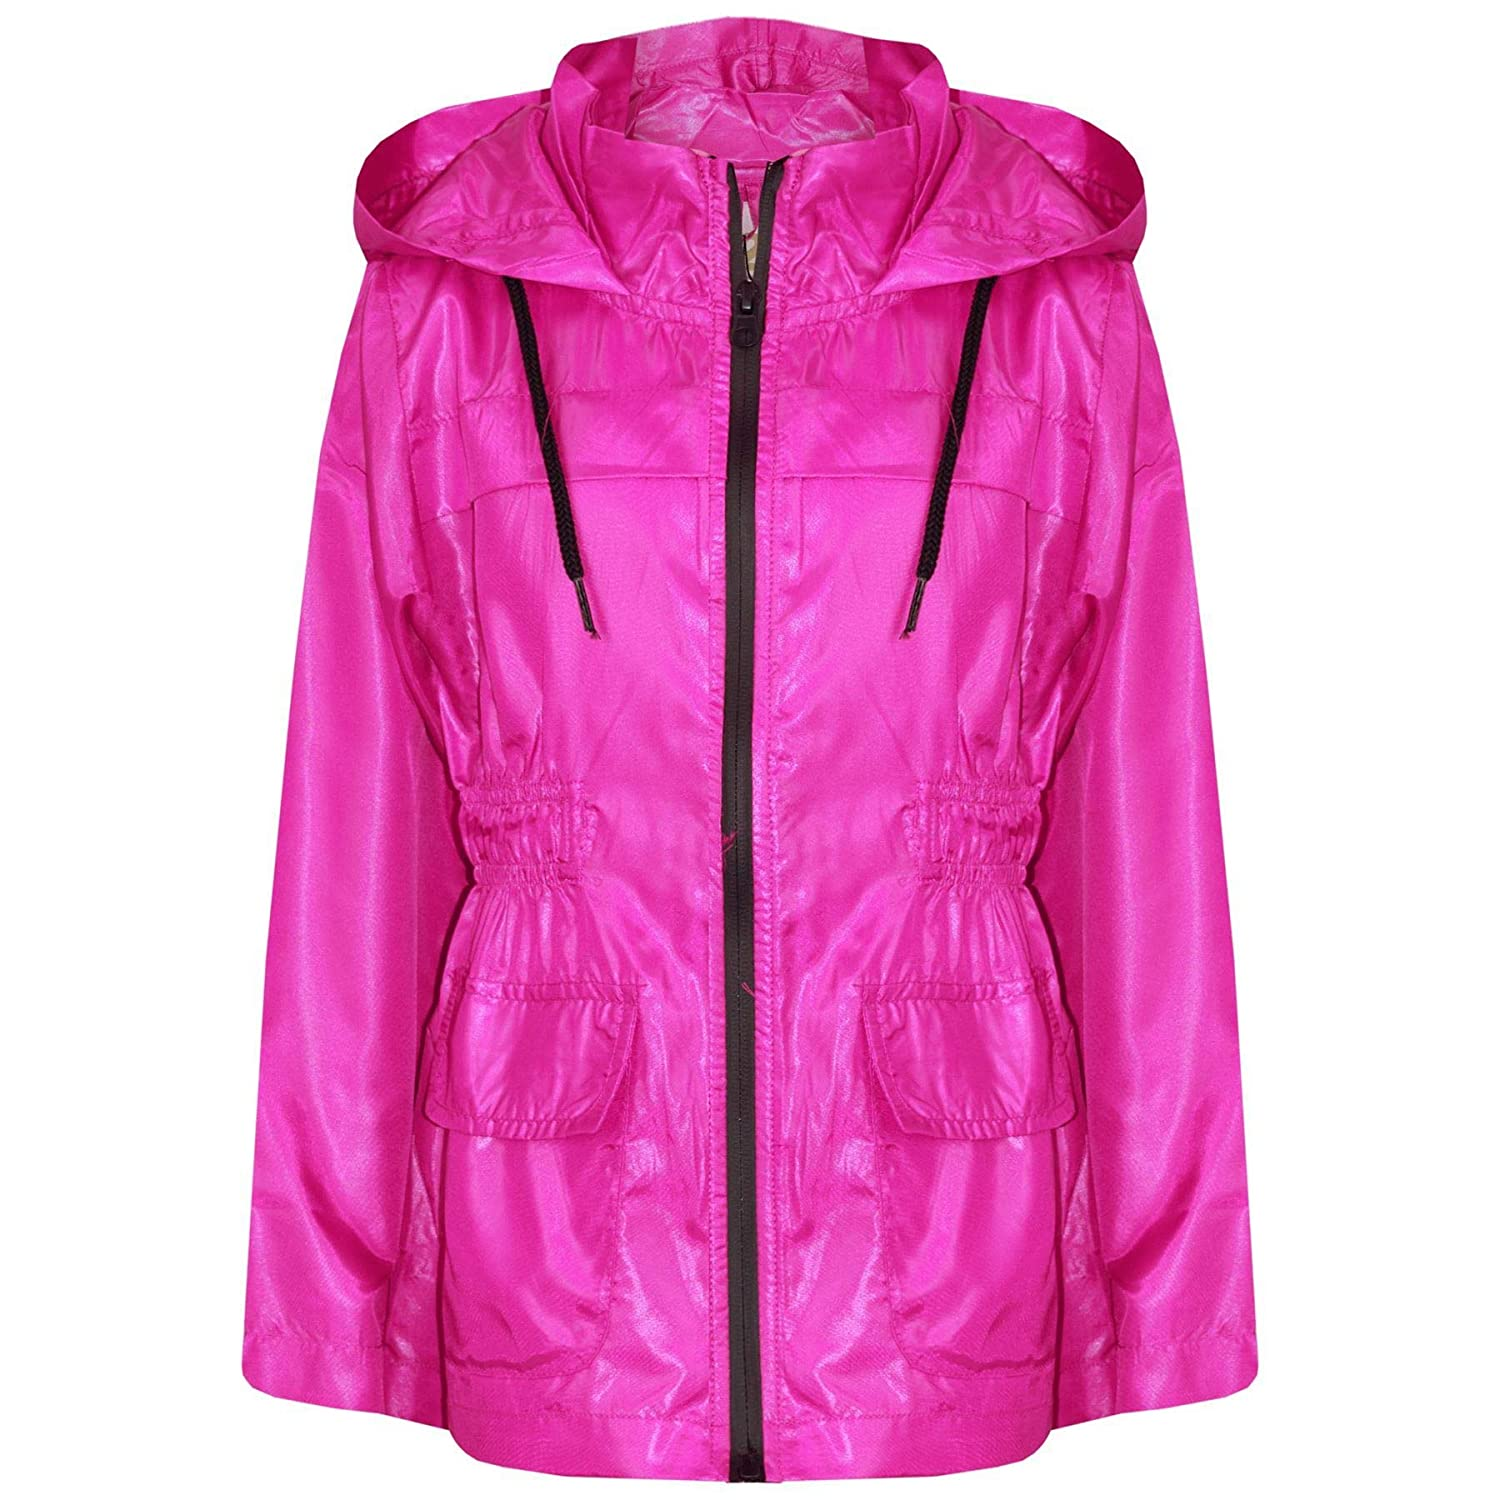 A2Z 4 Kids® Kids Girls Boys Raincoats Jackets Designer's Pink Light Weight Waterproof Kagool Hooded Cagoule Rain Mac Coats New Age 5 6 7 8 9 10 11 12 13 Years